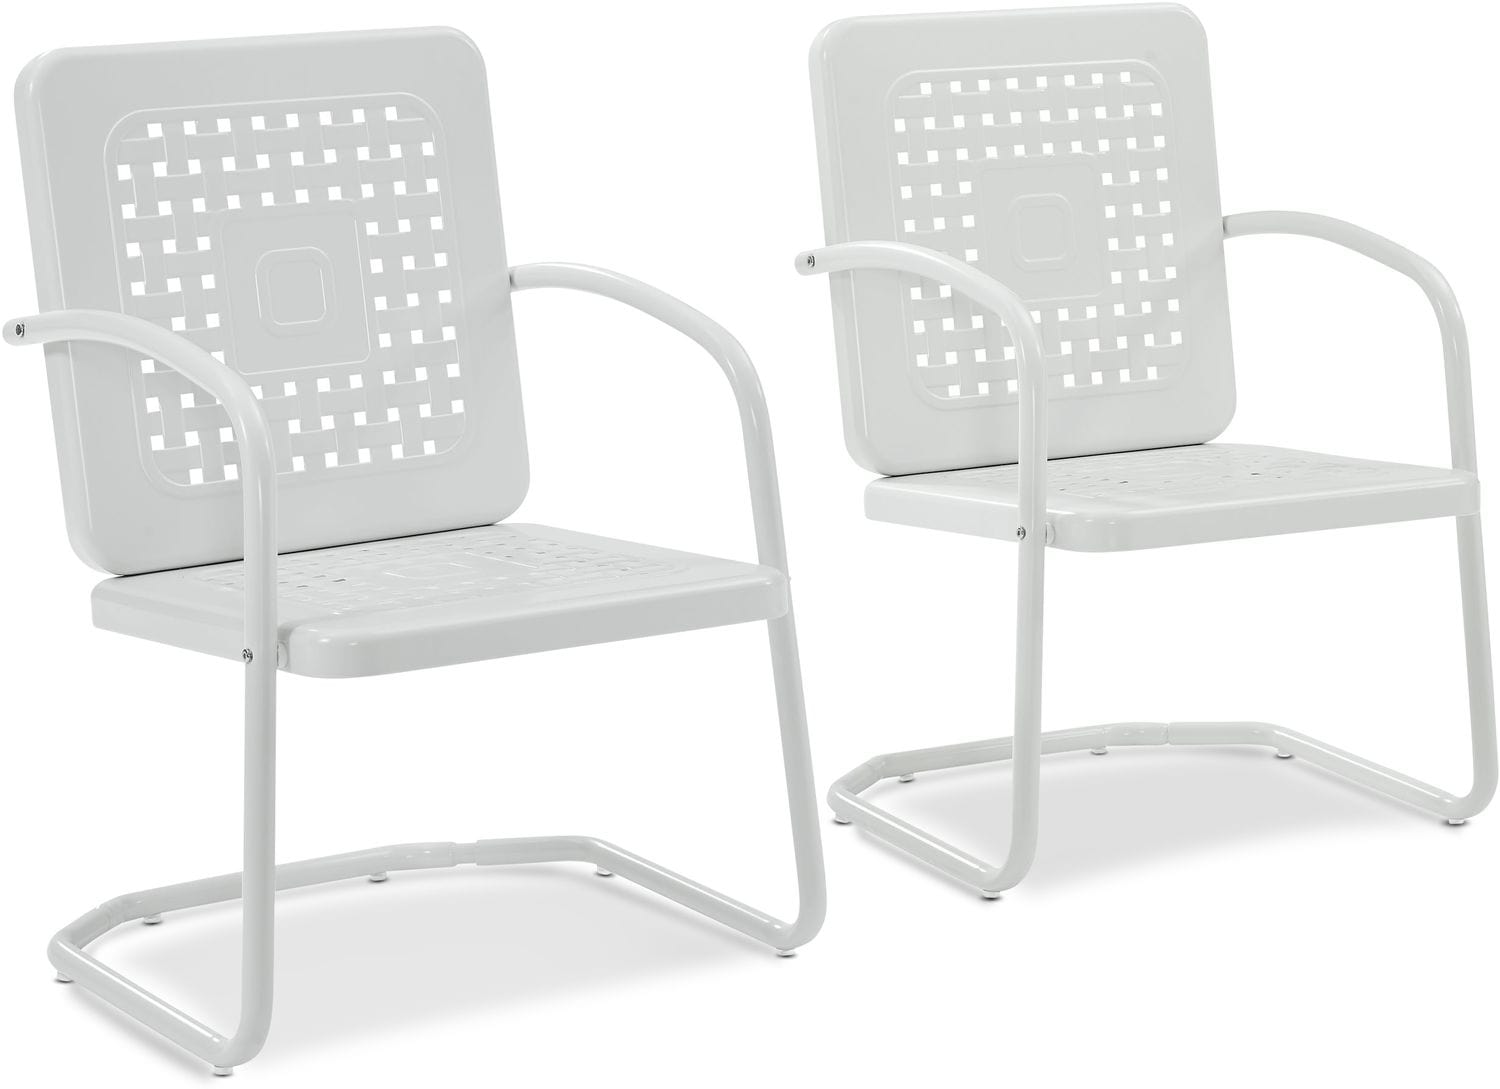 Outdoor Furniture - Preston Set of 2 Outdoor Chairs